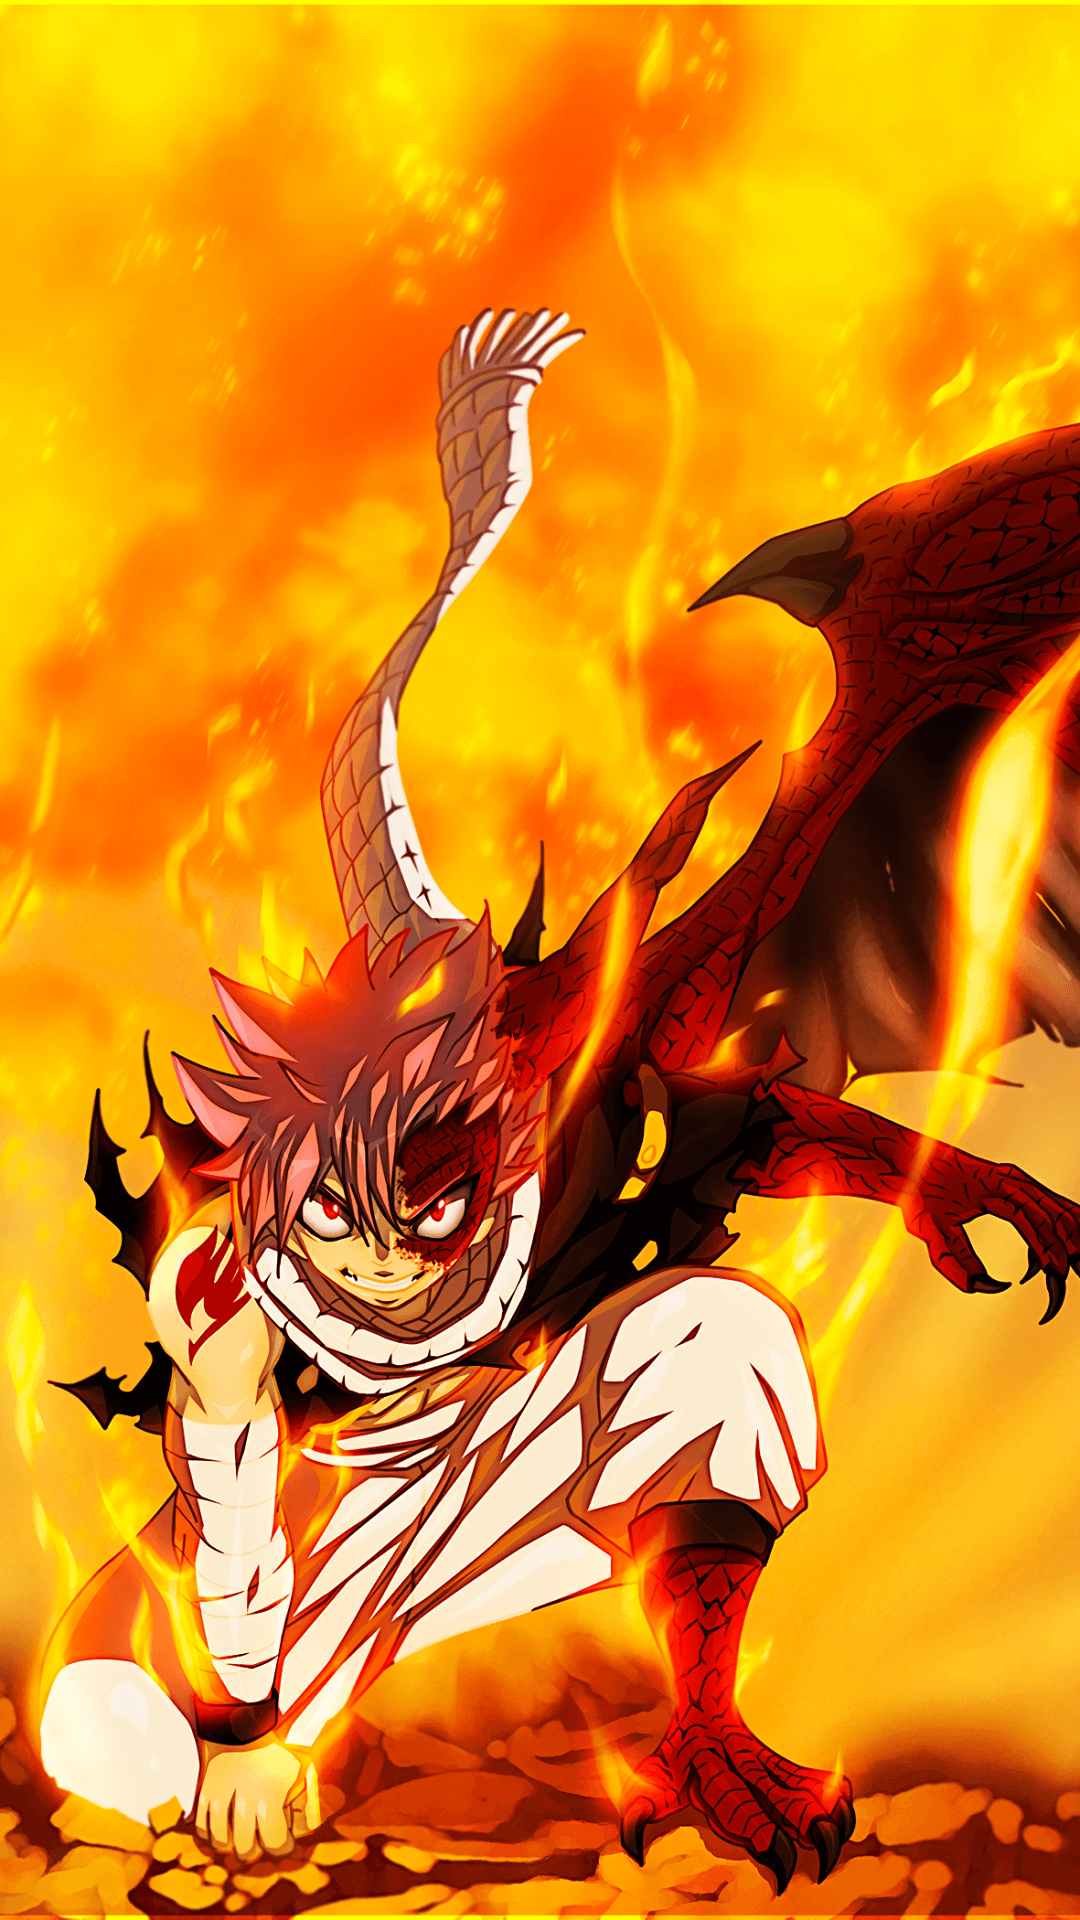 Fairy Tail Phone Wallpapers - Top Free Fairy Tail Phone